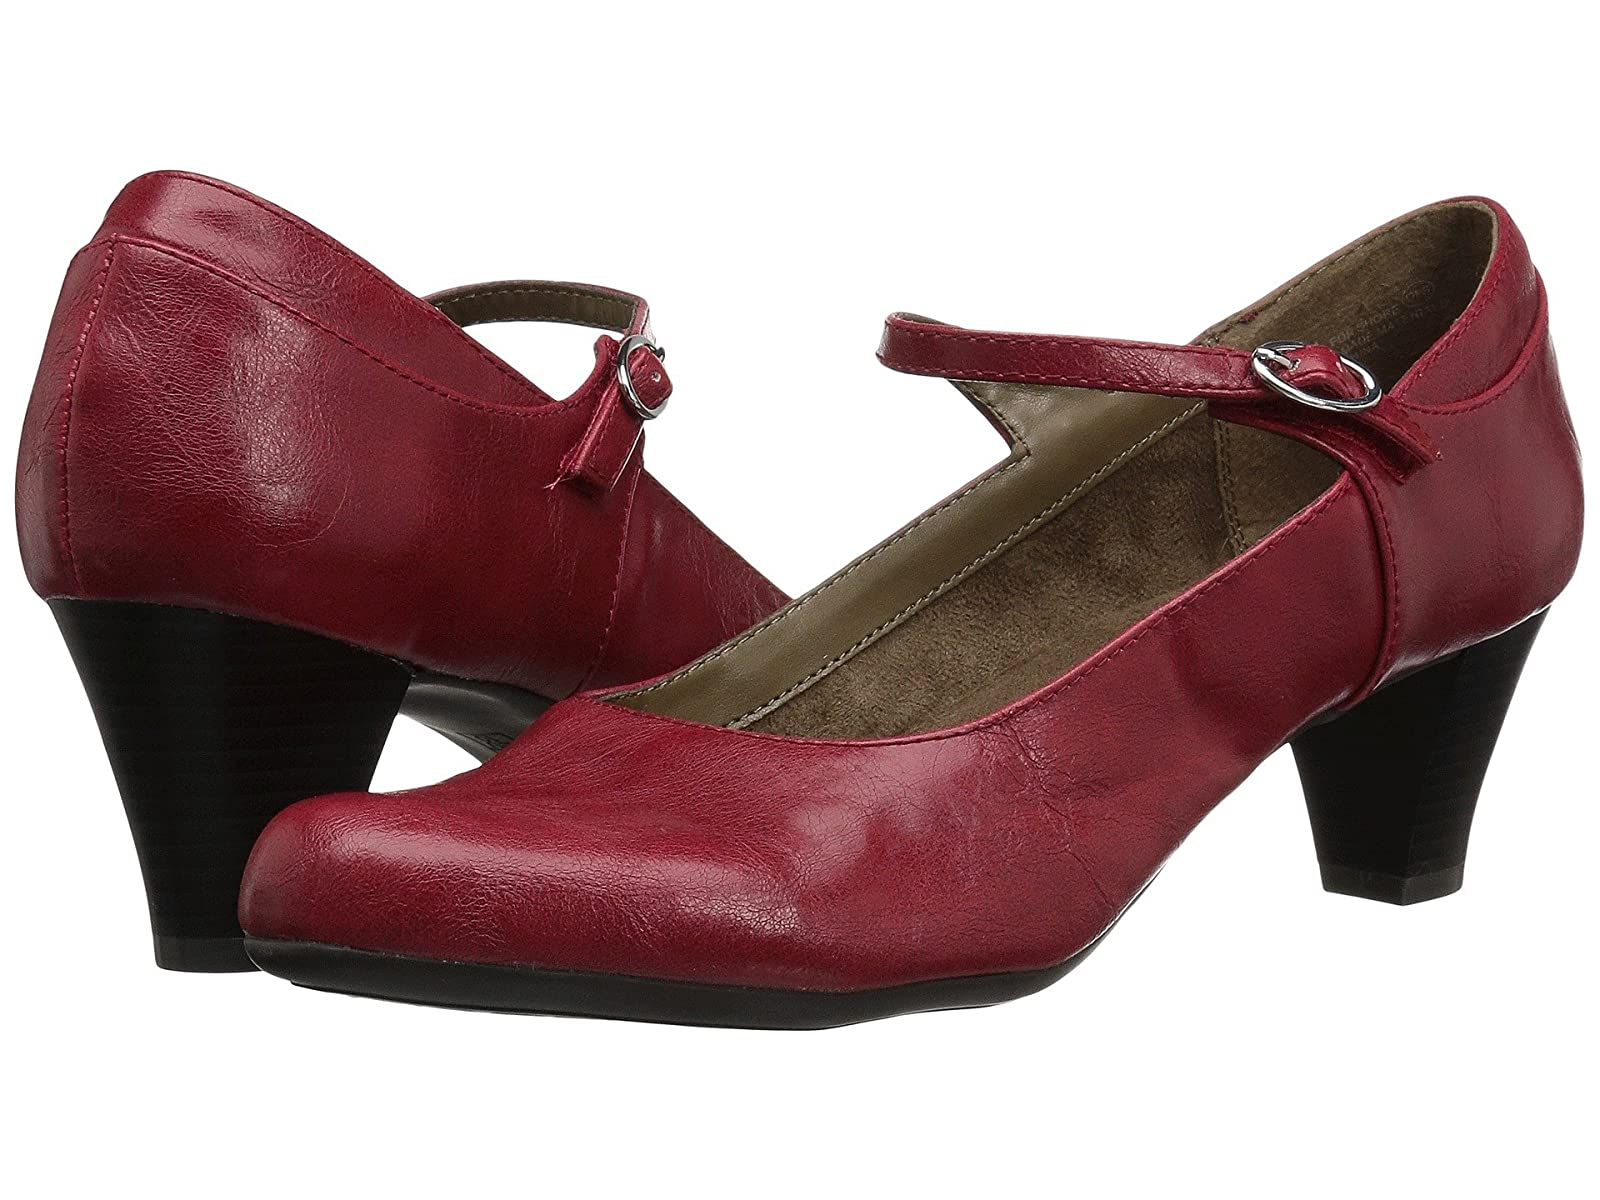 A2 by Aerosoles For ShoreAffordable and distinctive shoes